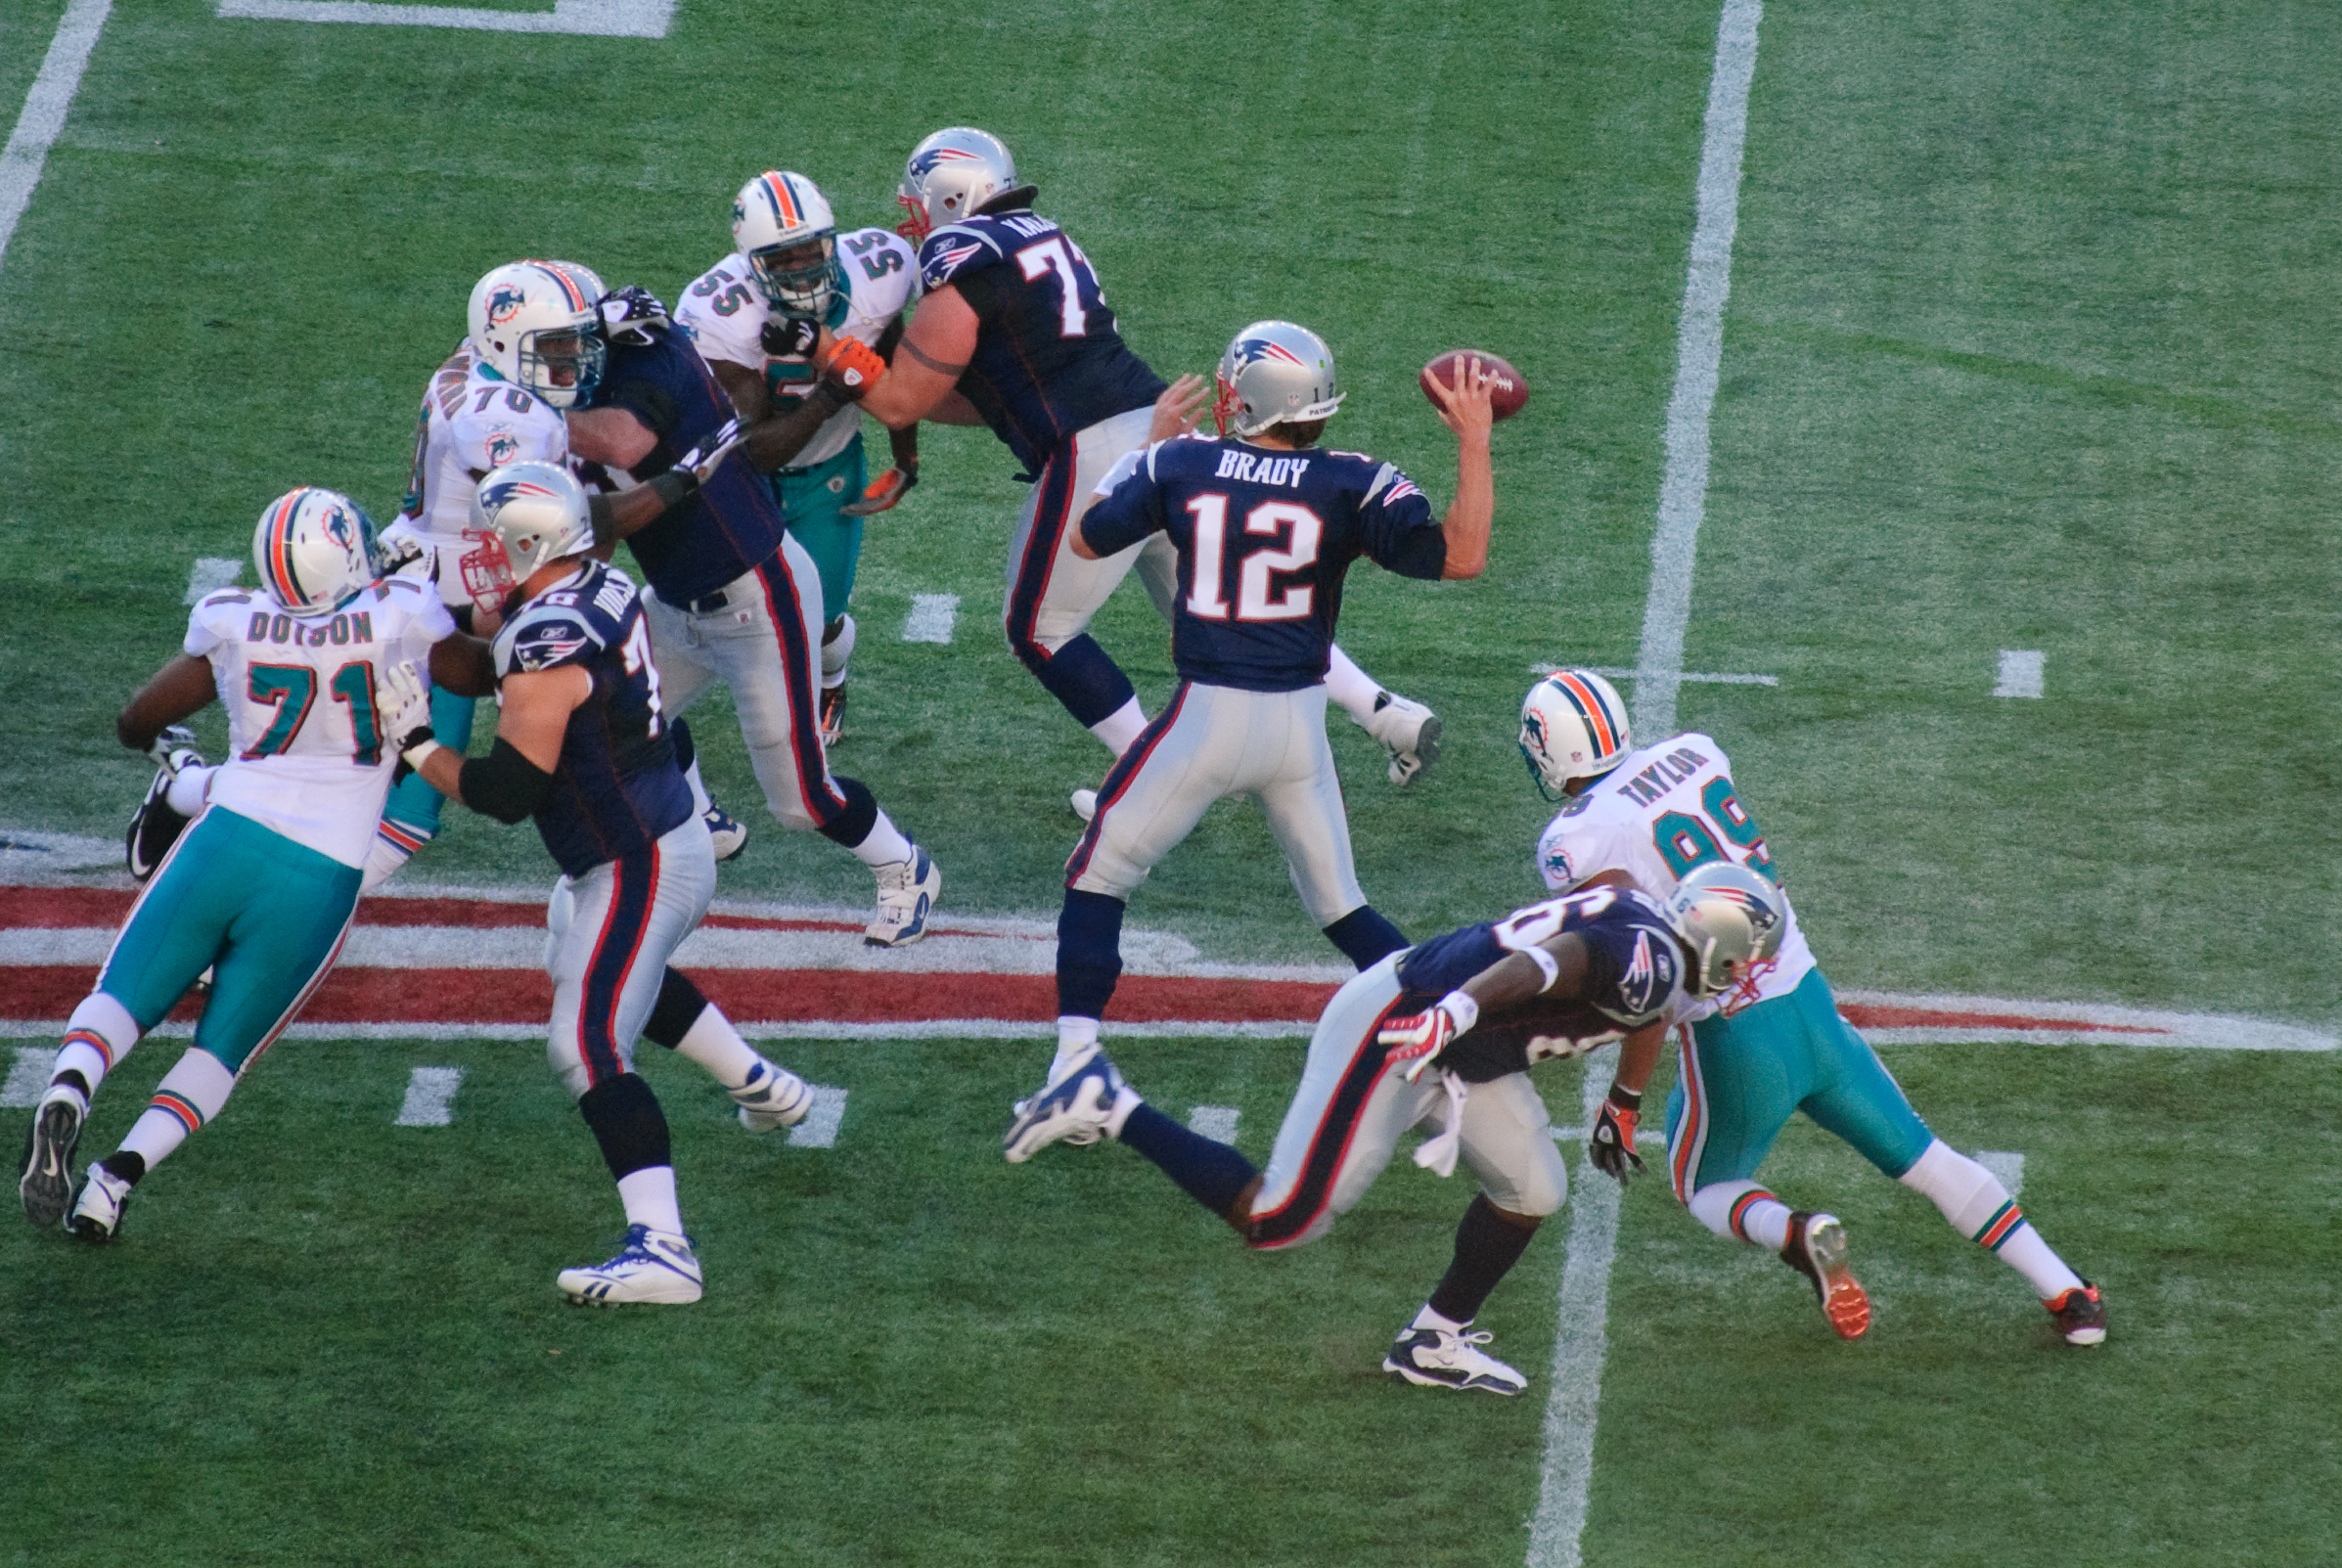 File:Tom Brady and the Miami Dolphins.jpg - Wikimedia Commons